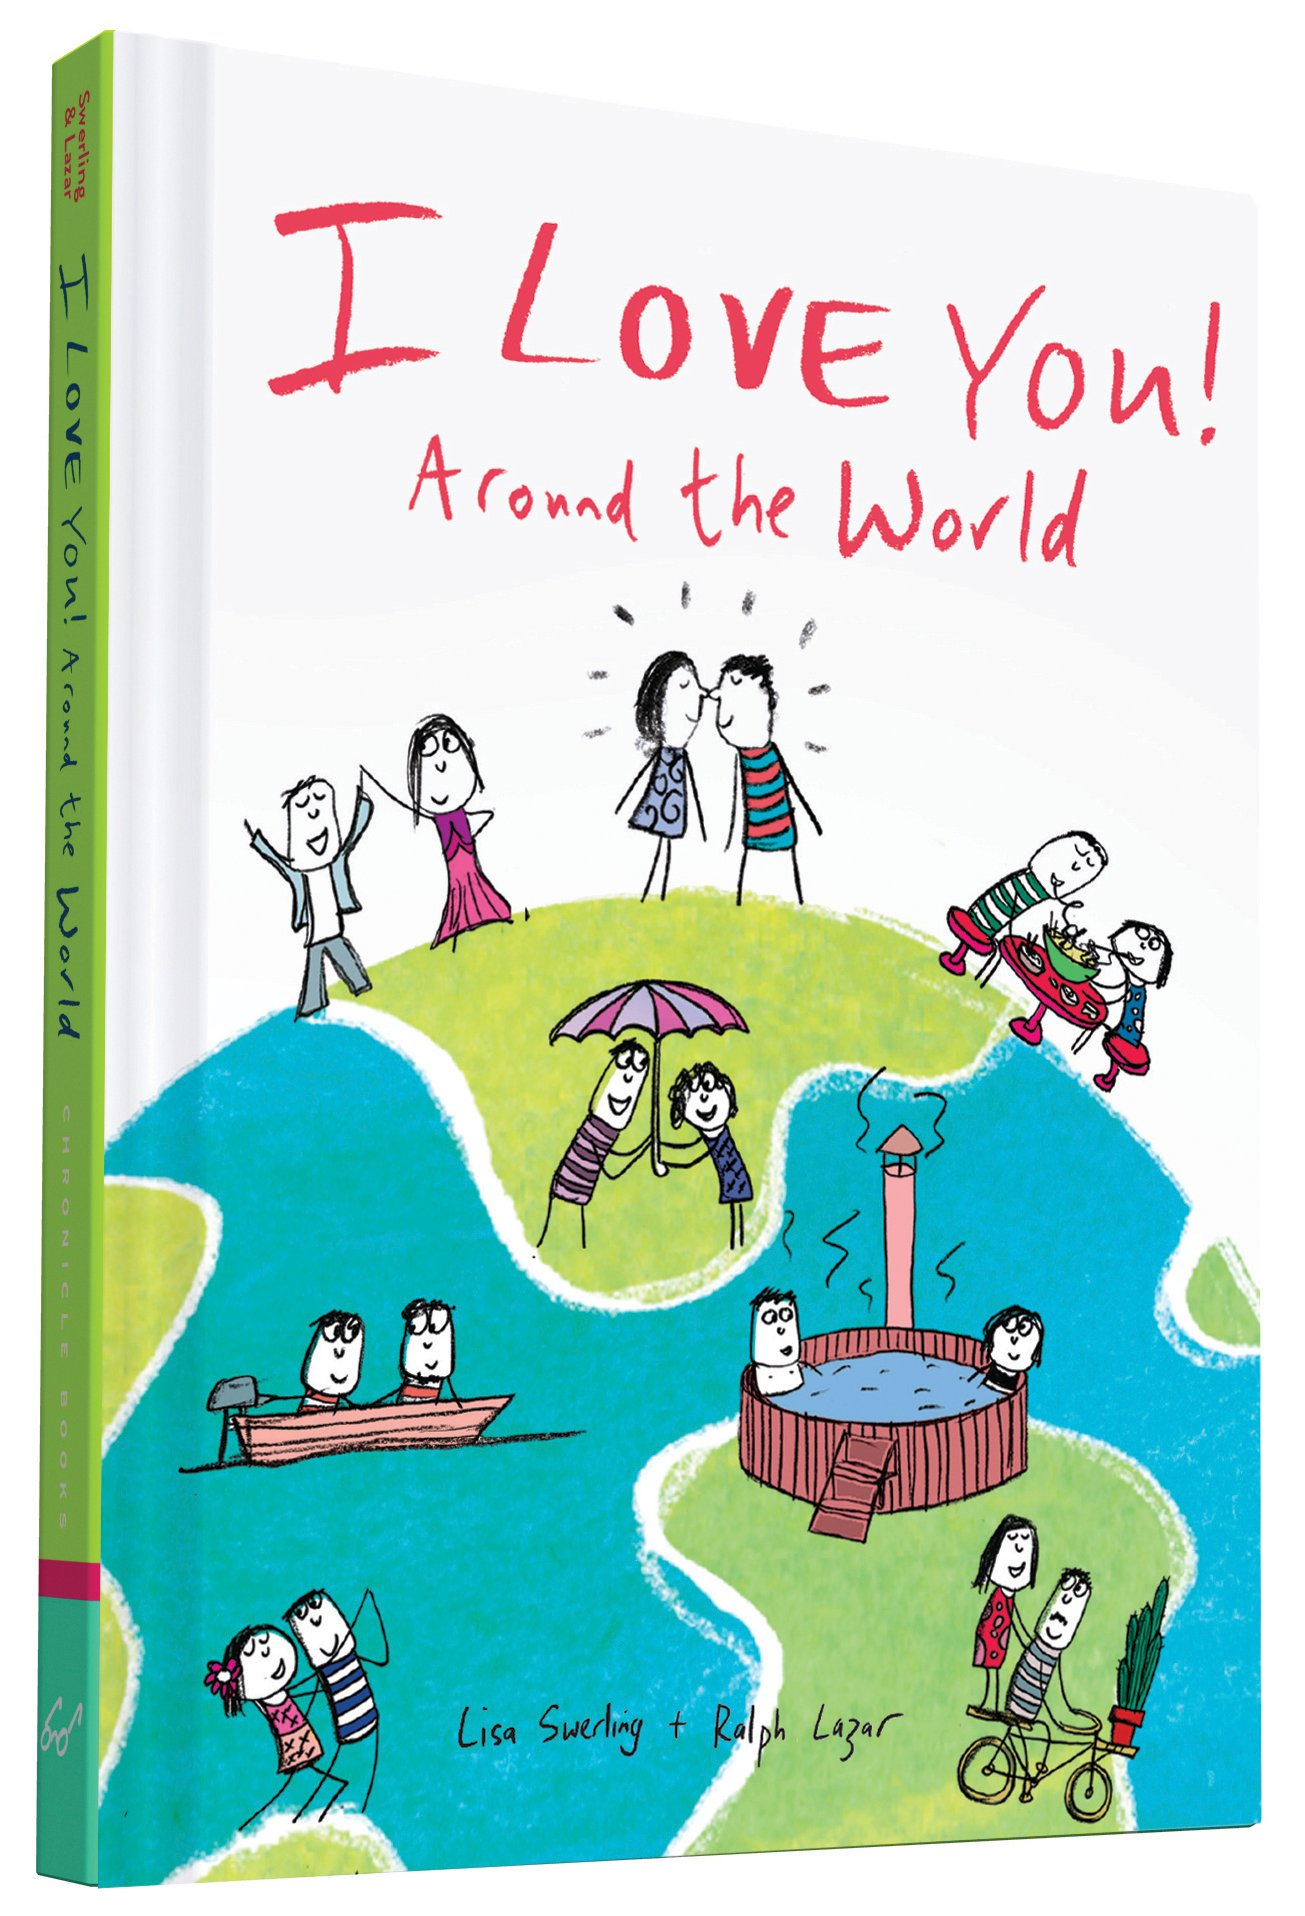 I Love You Around the World: Lisa Swerling, Ralph Lazar